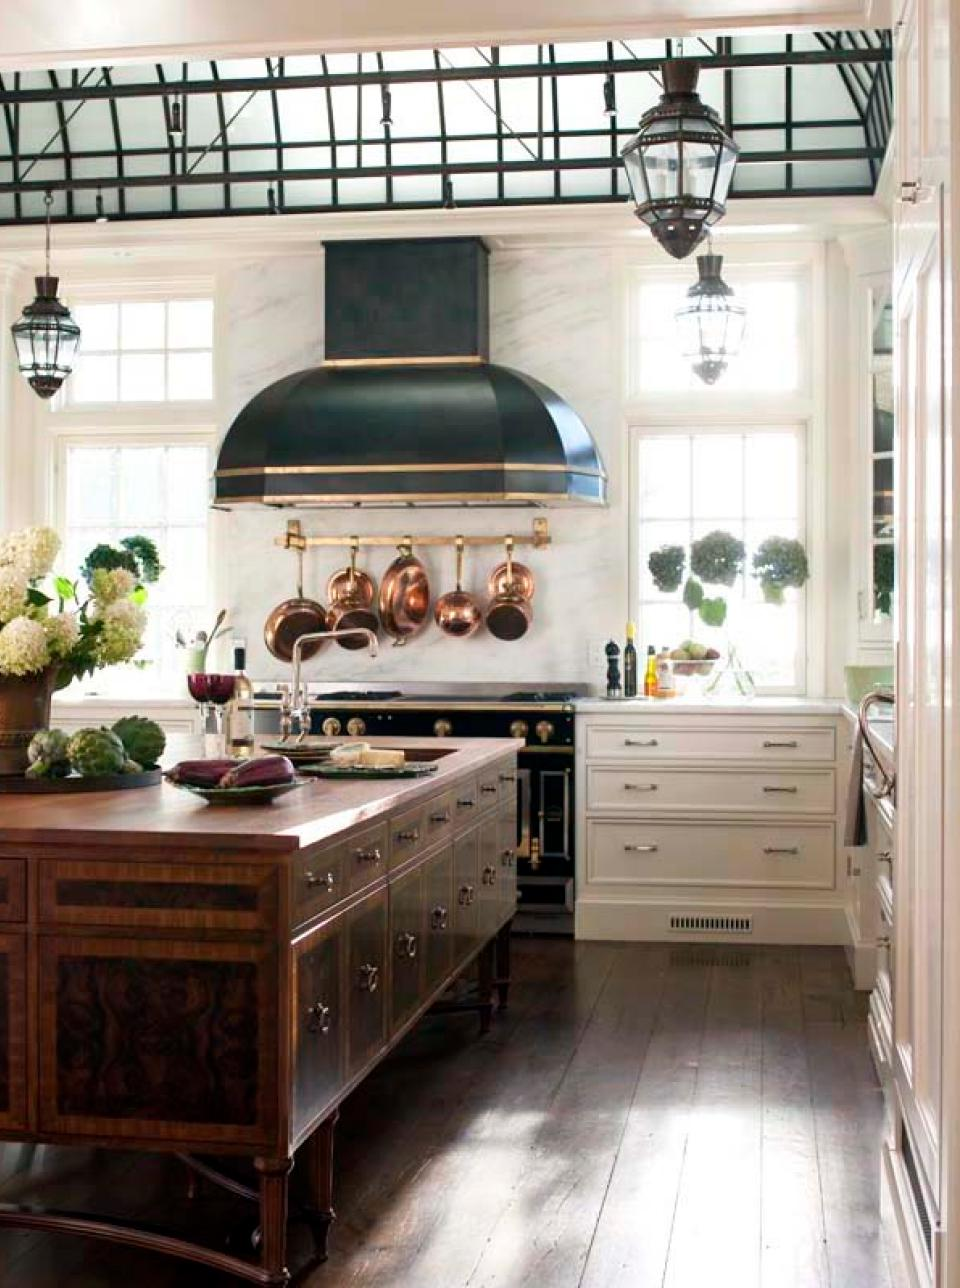 Older Home Kitchen Remodeling Ideas with Wooden Island